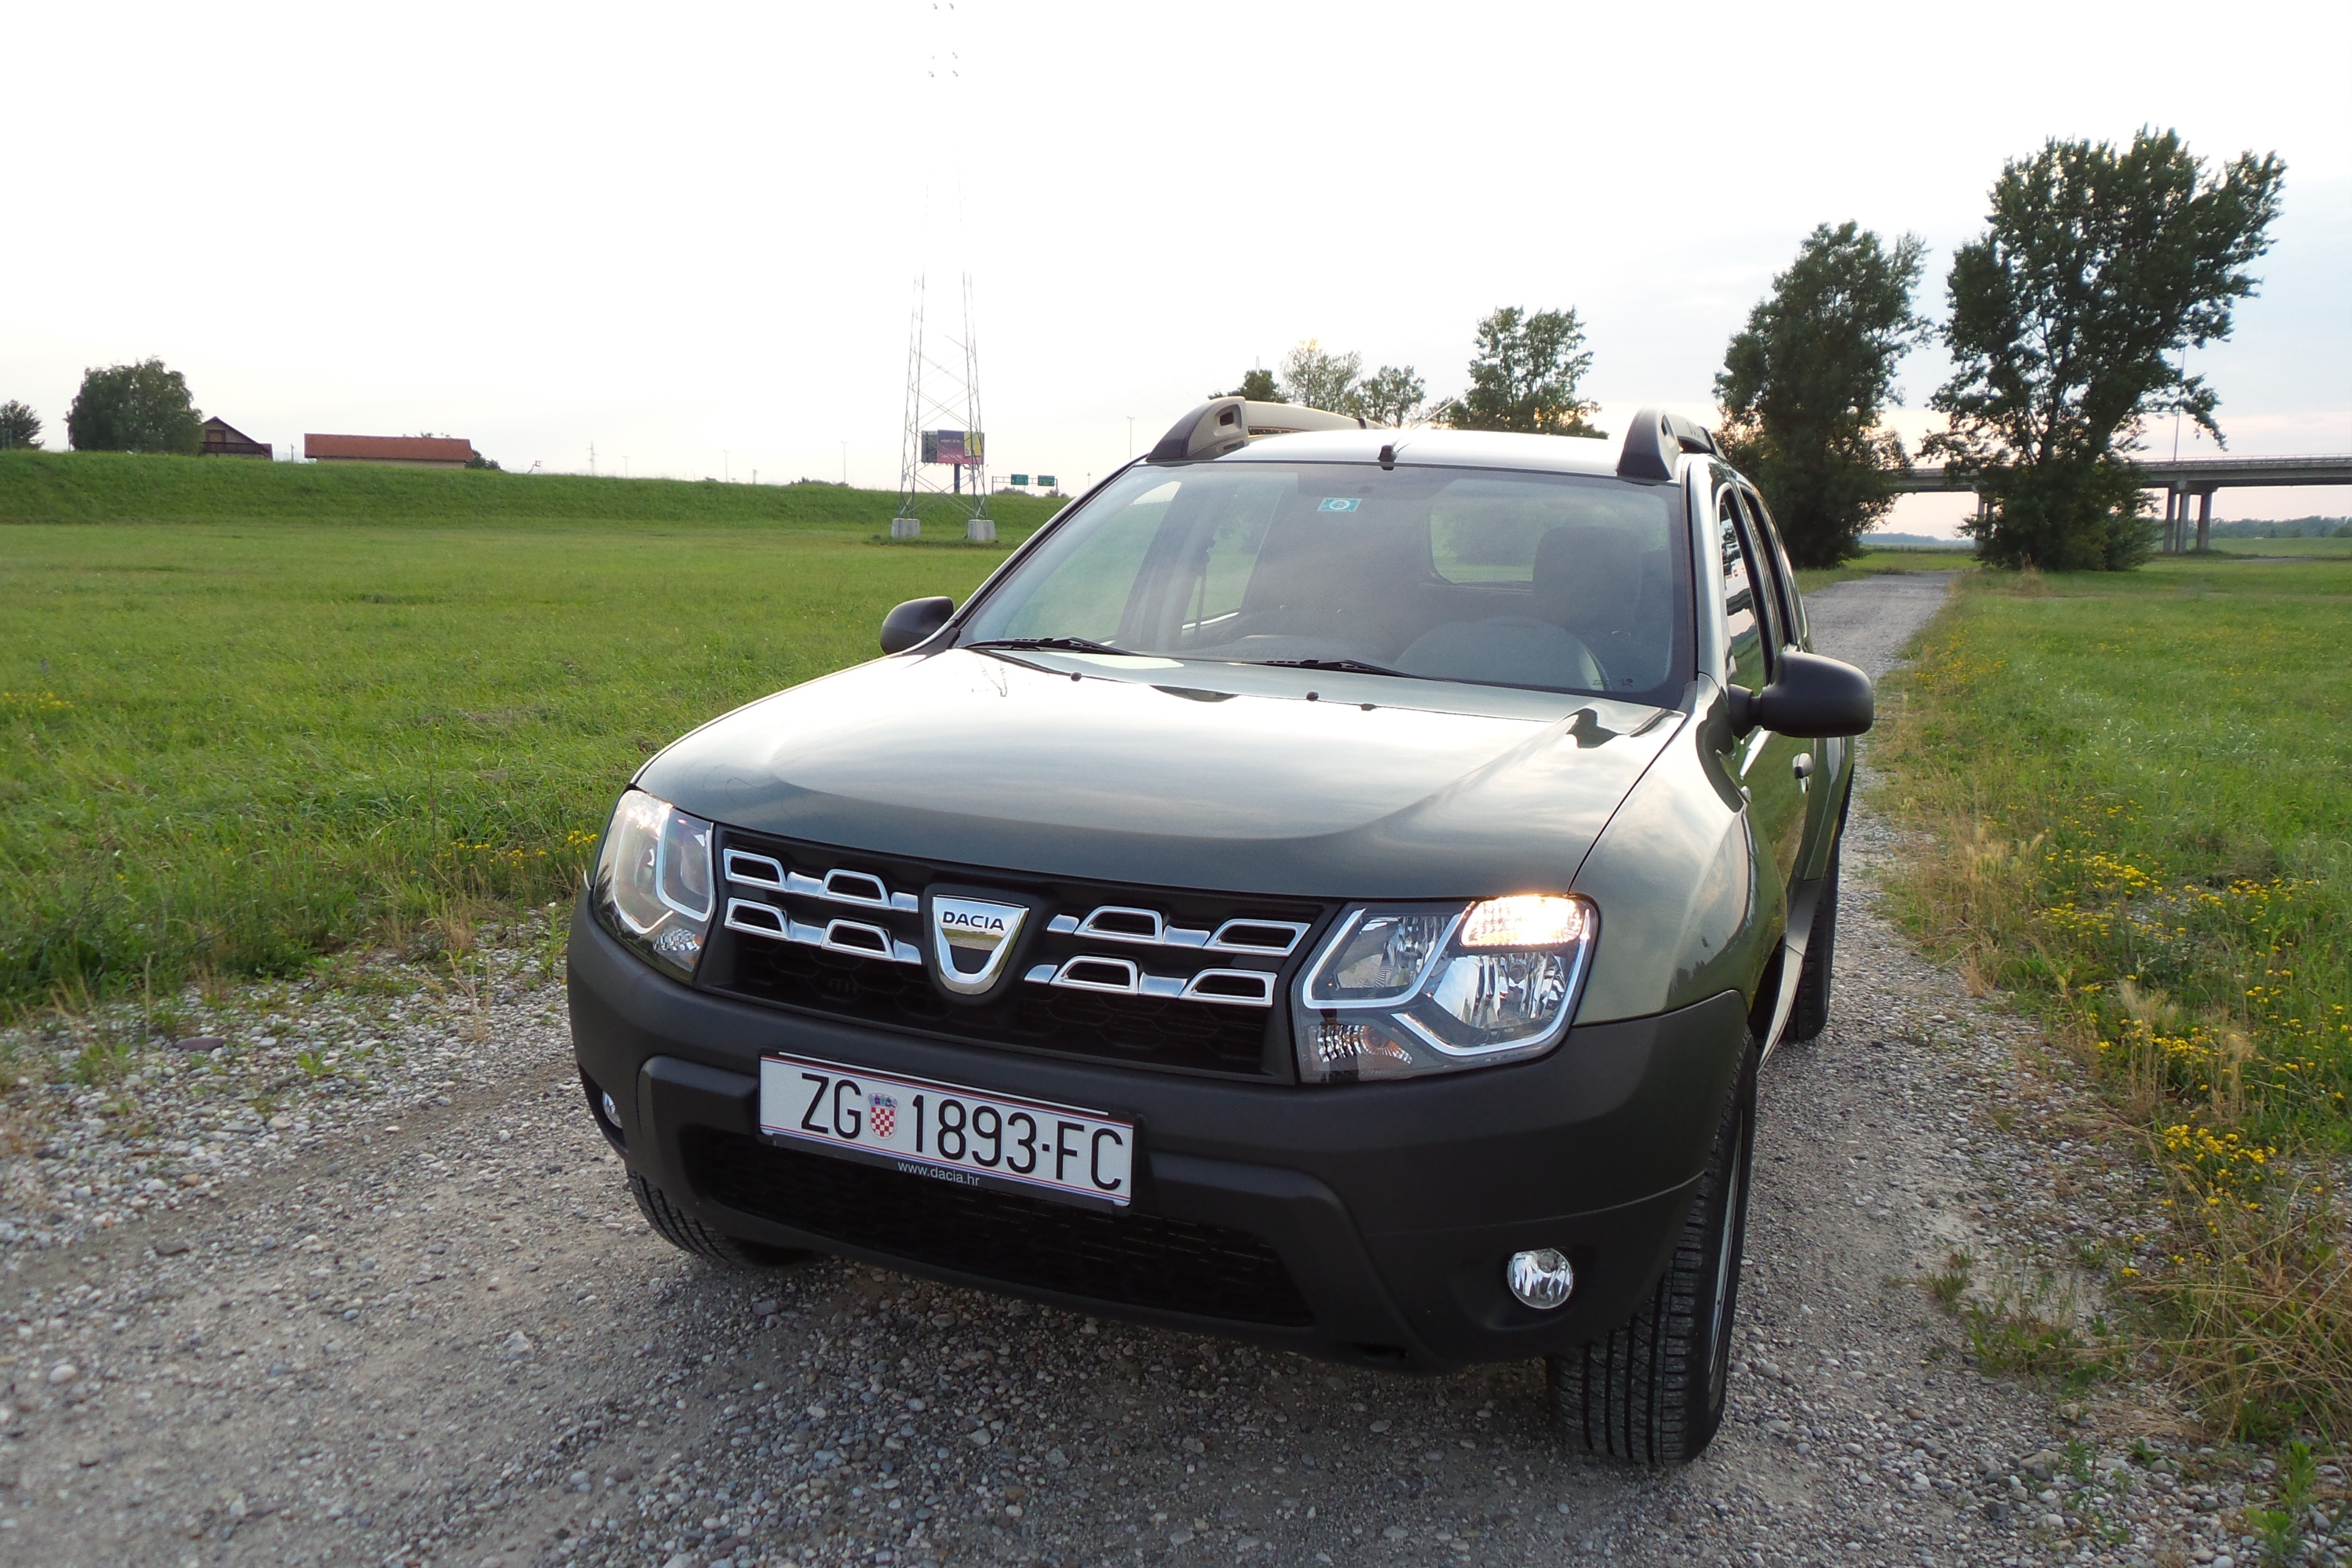 dacia duster 1 5 dci 110 4x4 ambiance test testirali smo. Black Bedroom Furniture Sets. Home Design Ideas